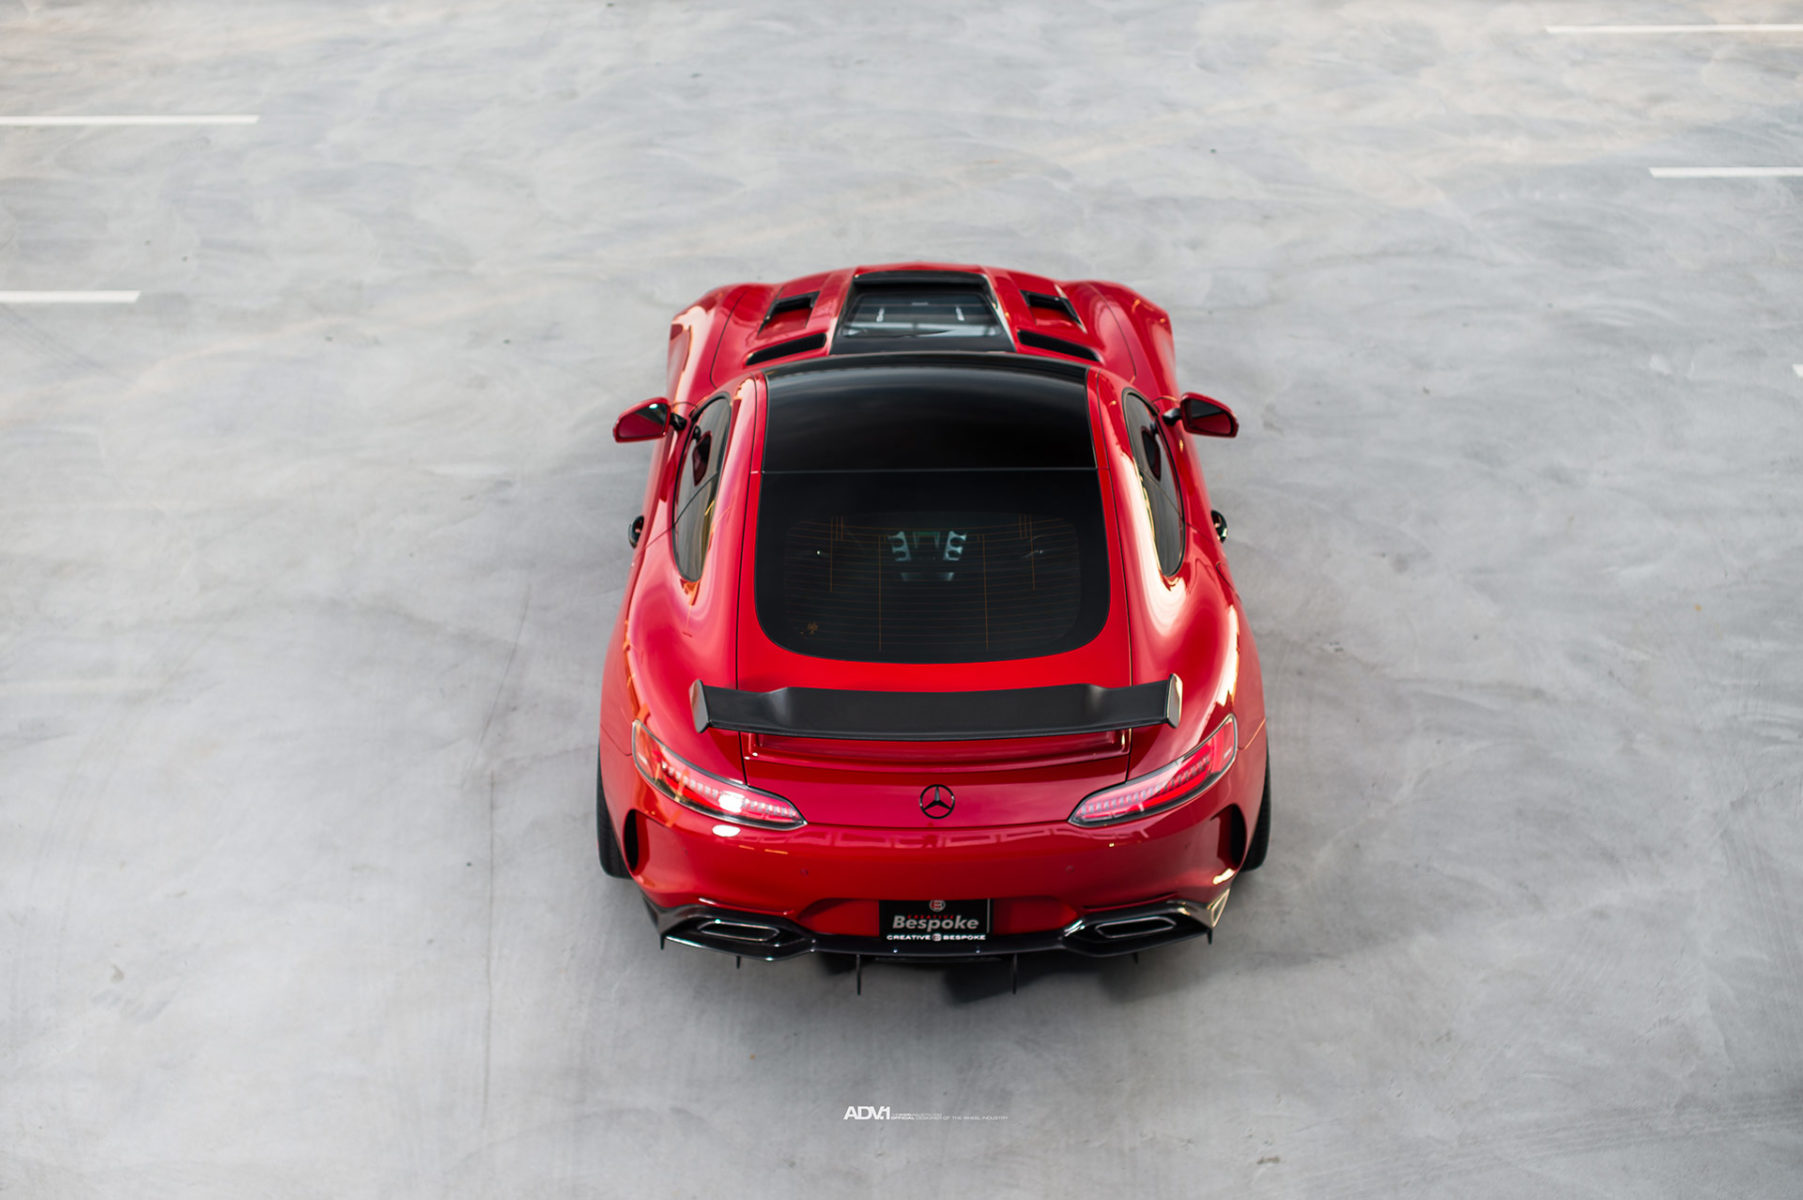 Mercedes Amg Gt S Is Red With Tuning Fury And Glory